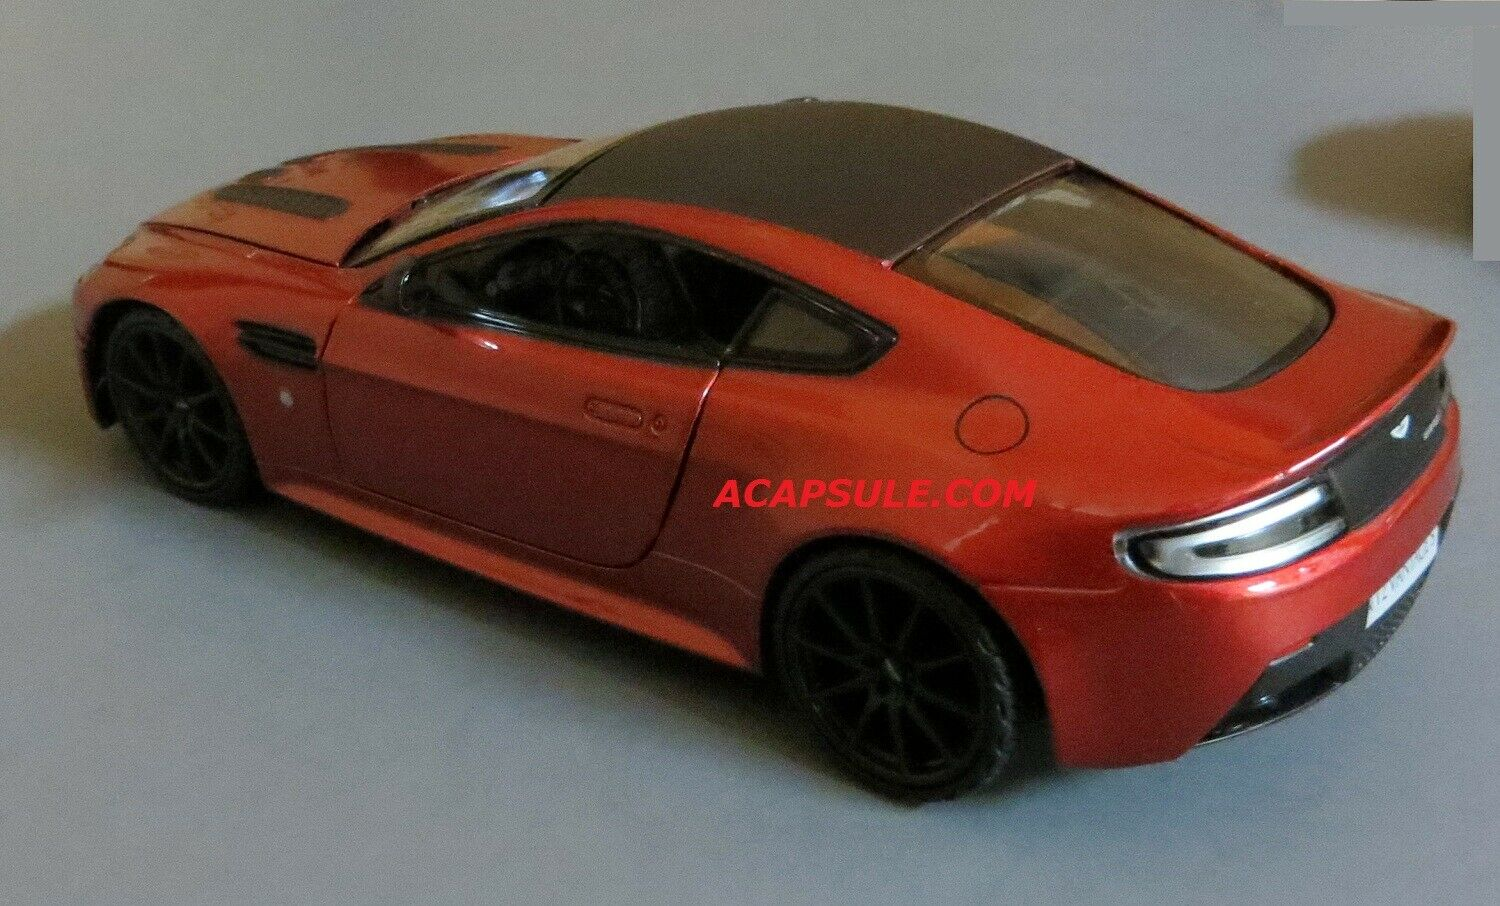 Aston Martin V12 Vantage In Red Diecast Model Car In 1 18 Scale By Autoart 70208 For Sale Online Ebay